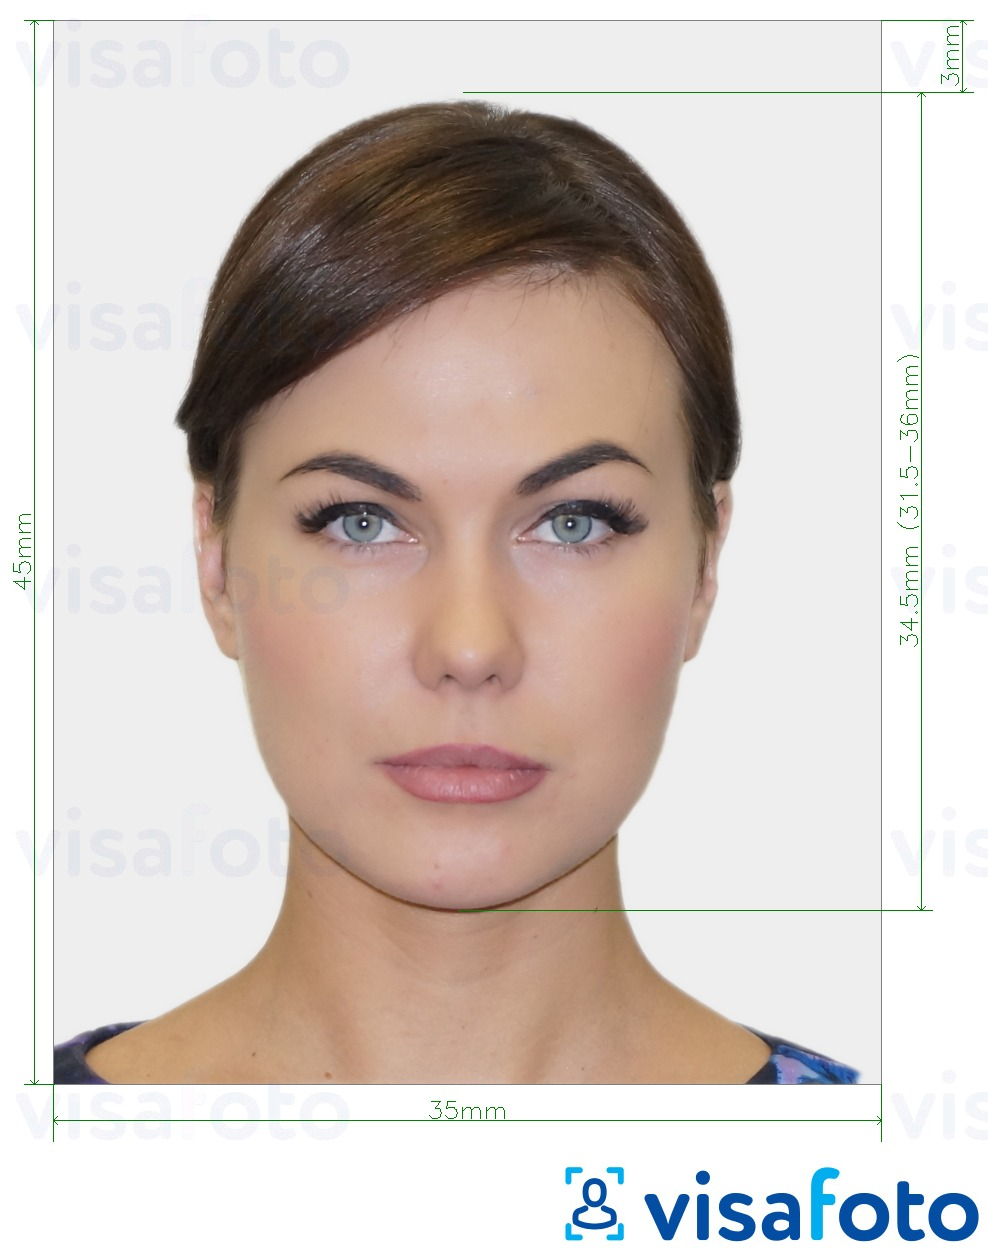 Example of photo for France Passport 35x45 mm (3.5x4.5 cm) with exact size specification